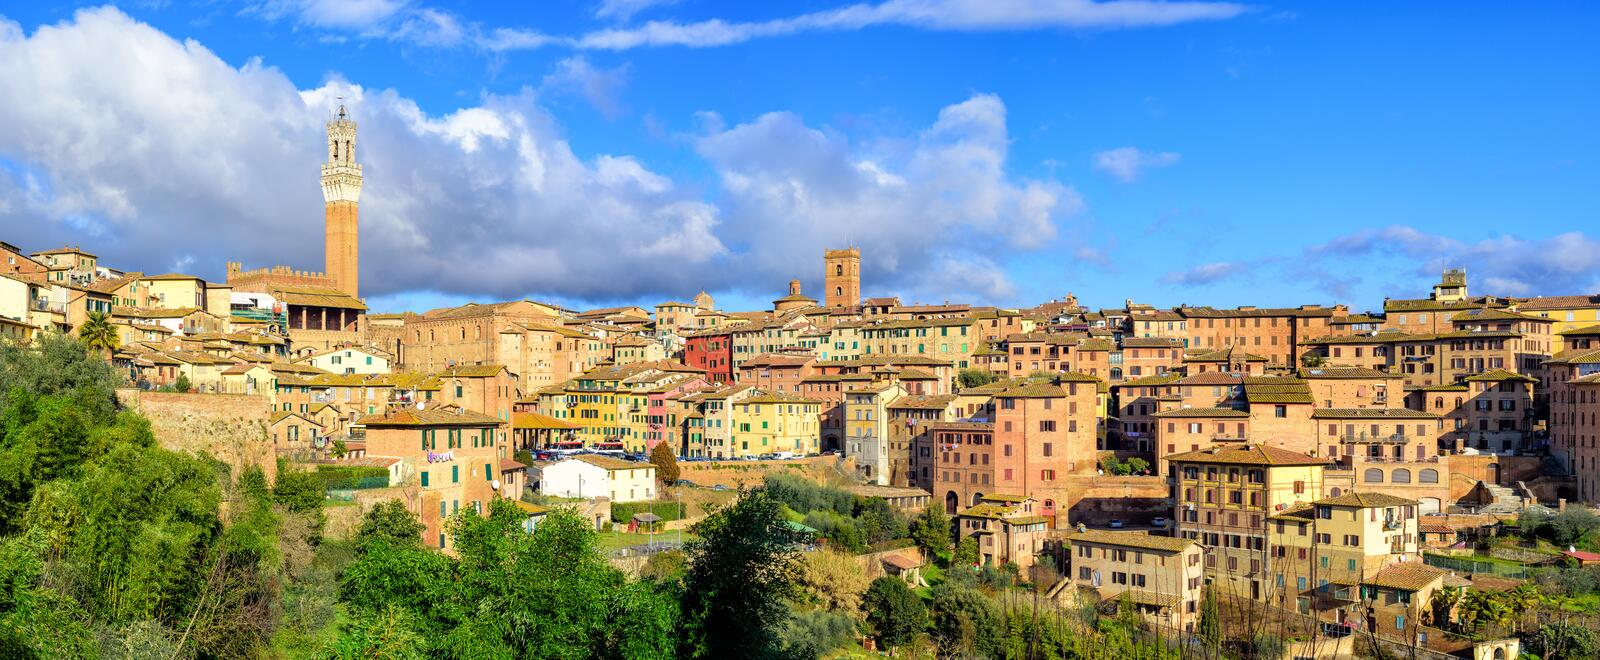 Panoramic view of Siena Old Town, Tuscany, Italy stock photos